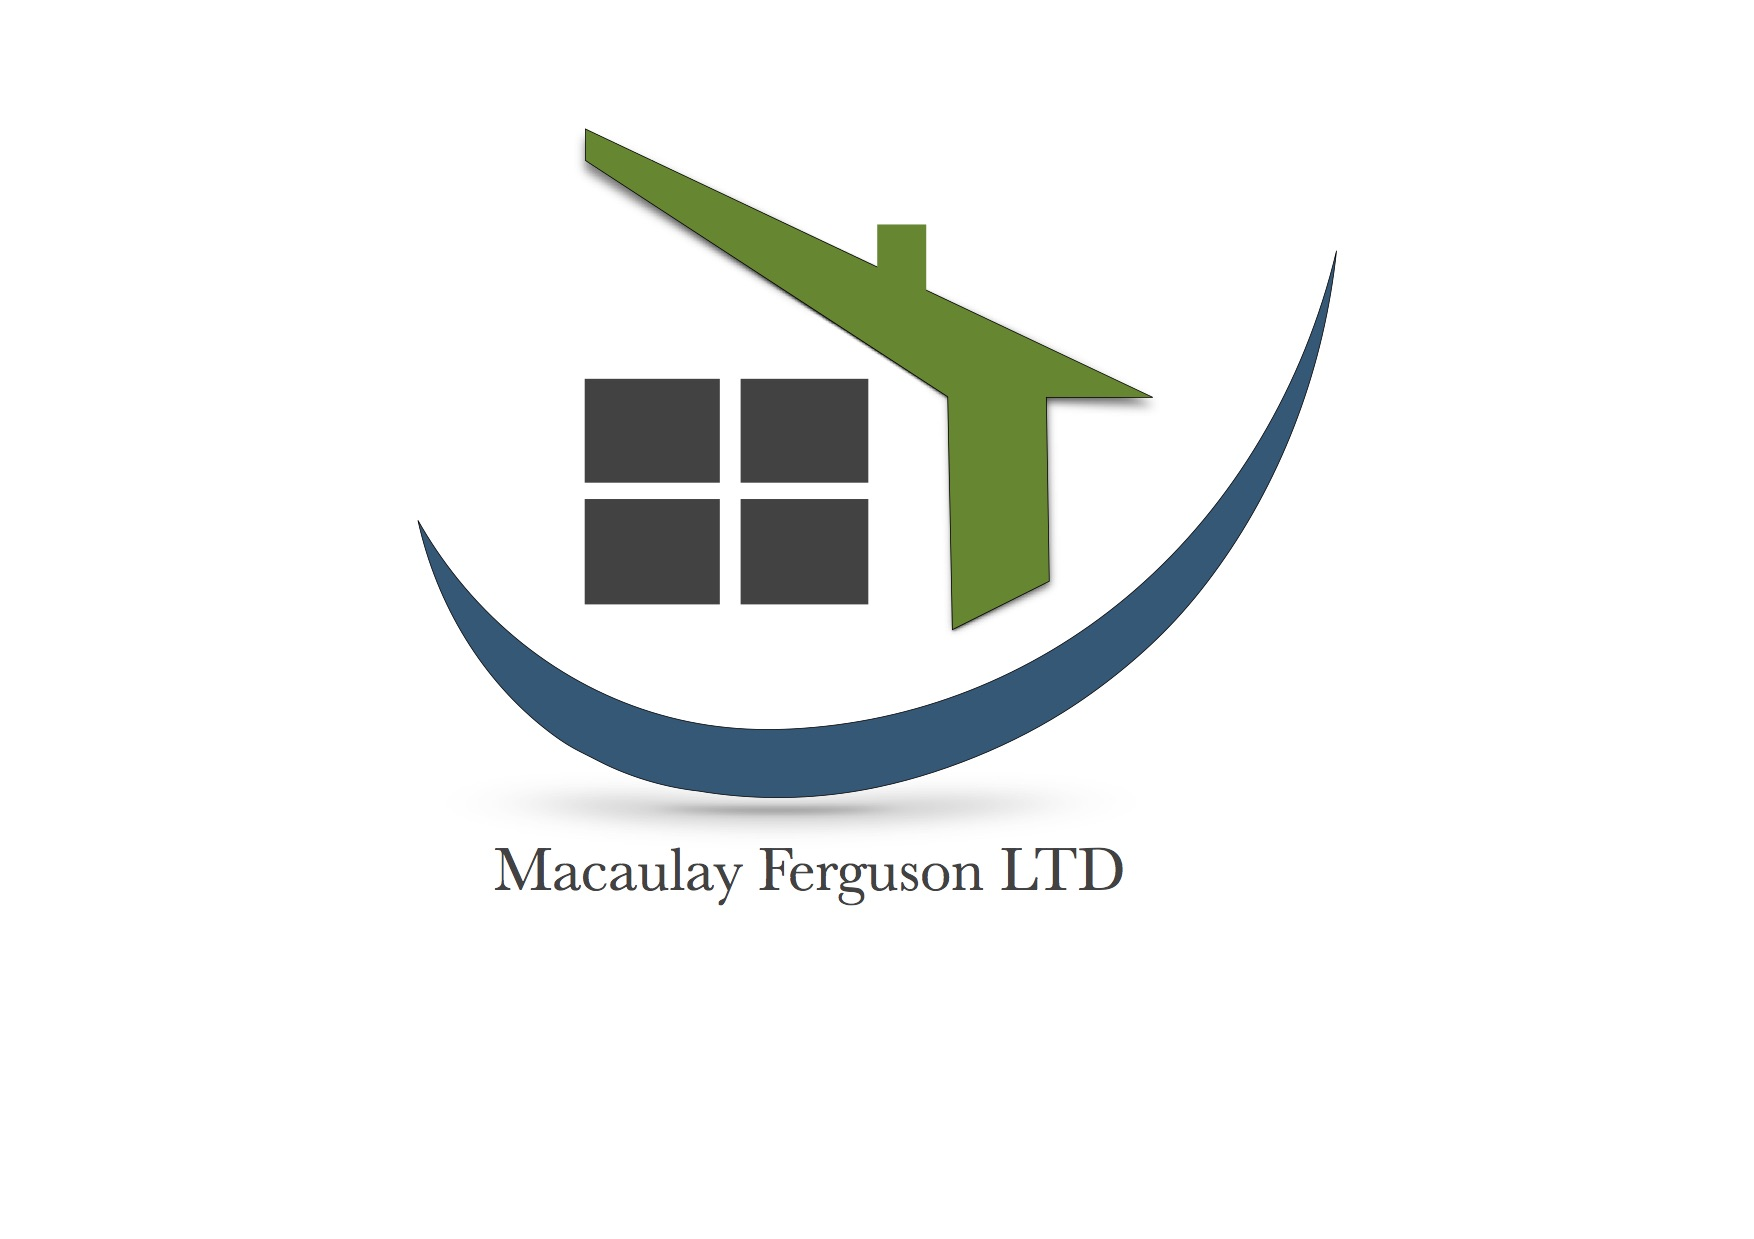 Macaulay Ferguson Ltd Verified Logo